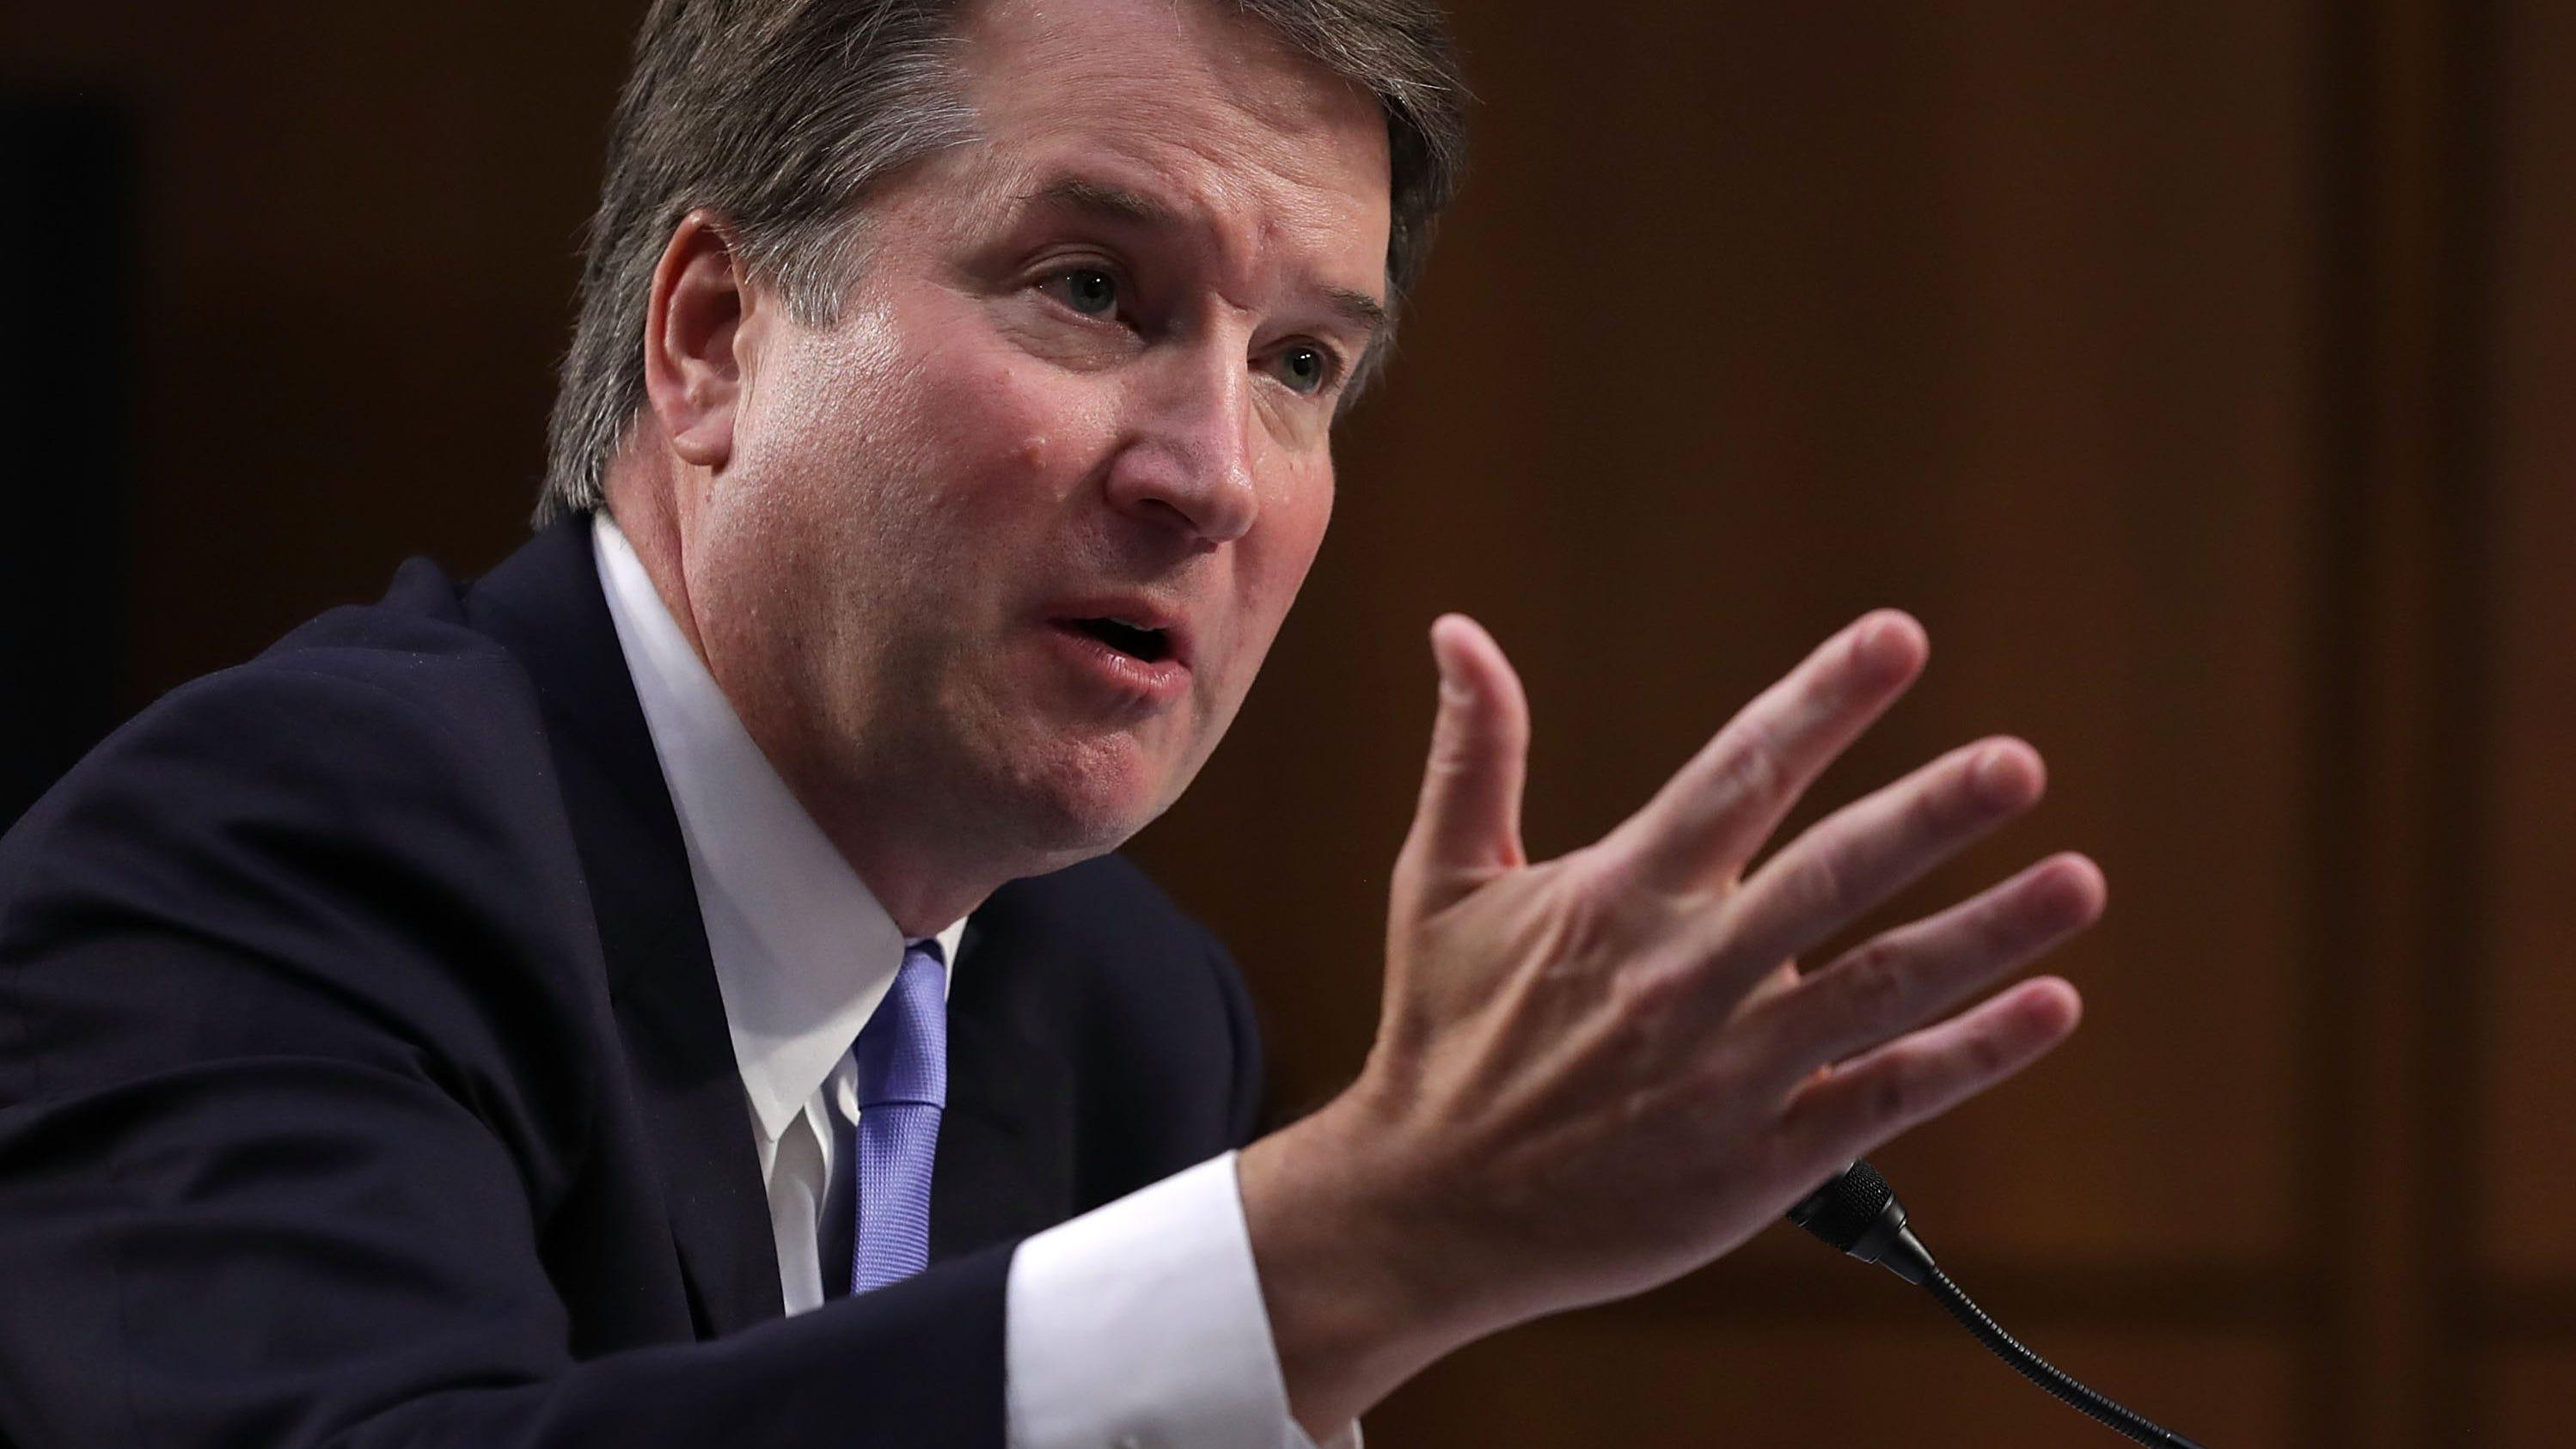 Supreme Court nominee Judge Brett Kavanaugh testifies before the Senate Judiciary Committee on Sept. 6, 2018, on the third day of his Supreme Court confirmation hearing in Washington, D.C.